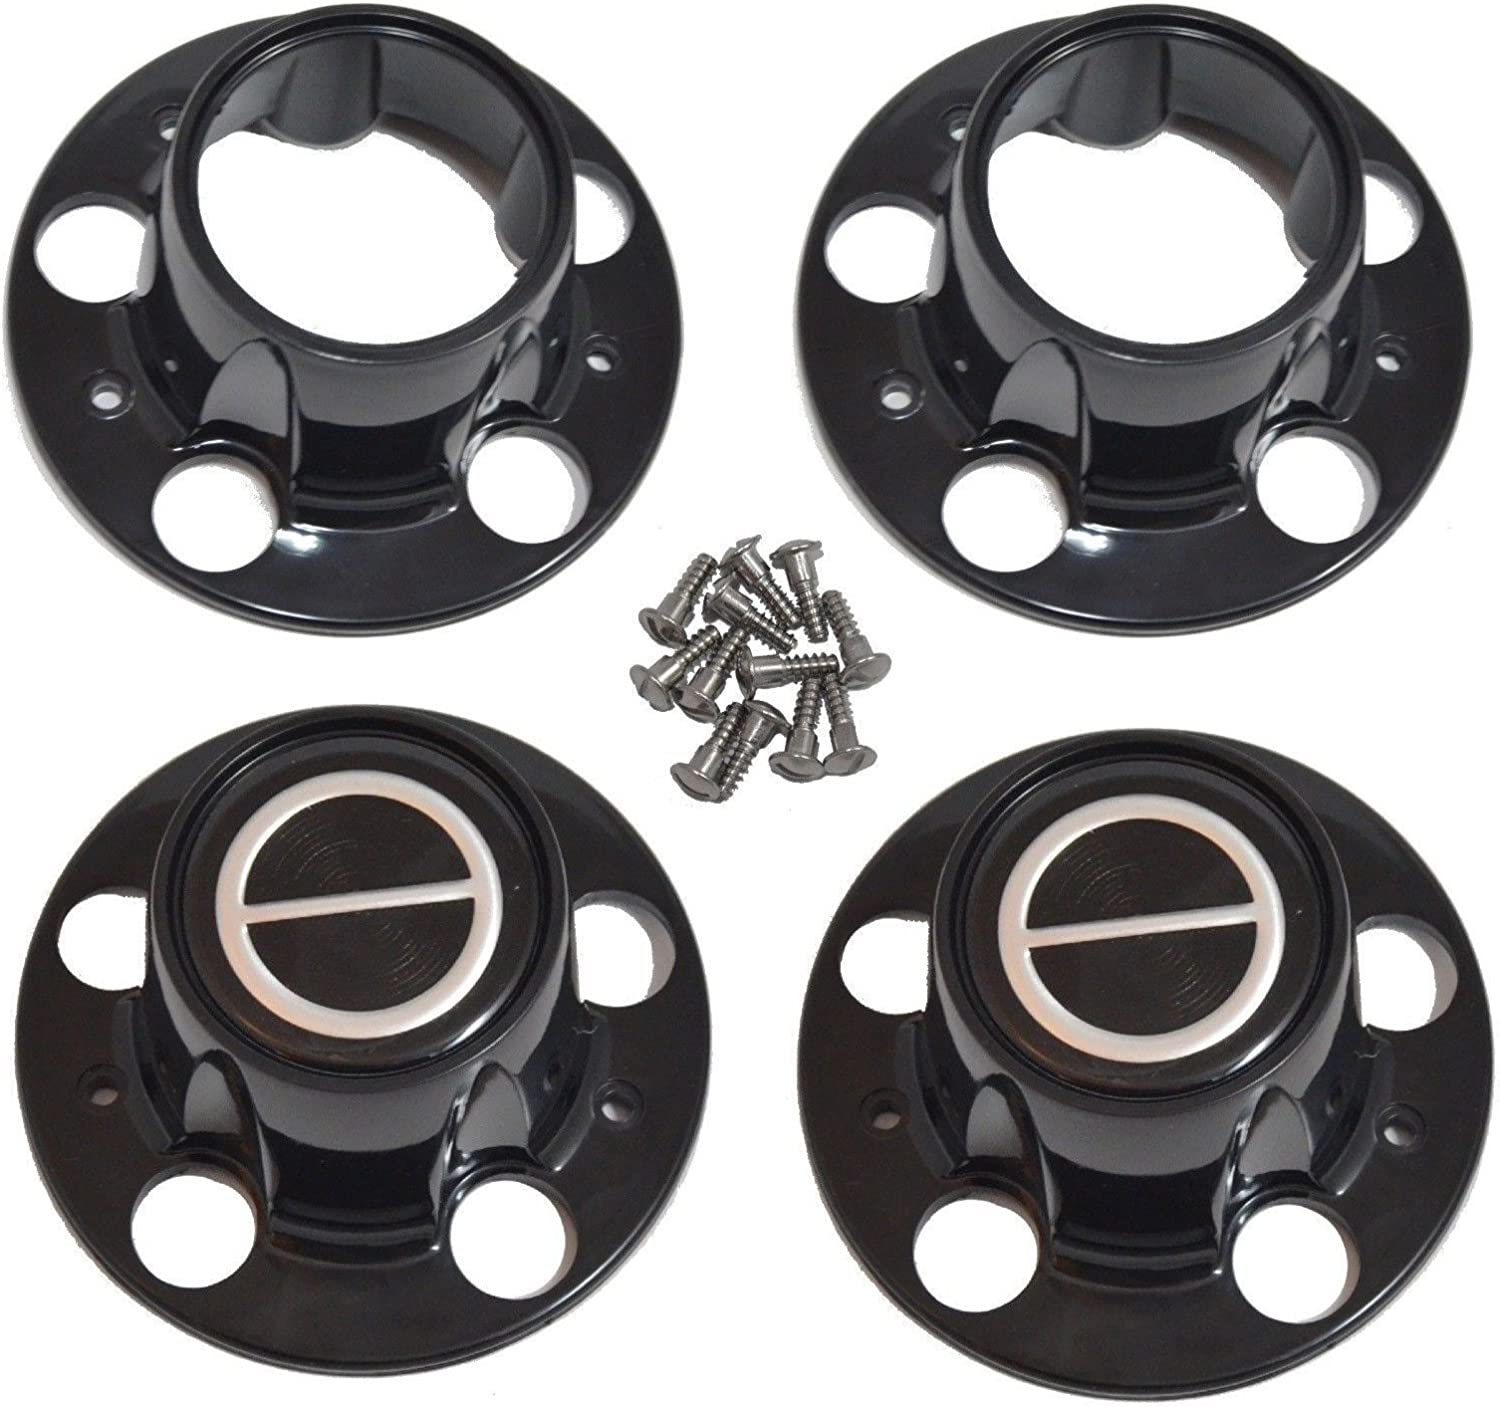 BB Auto Set of 4 New Limited Special Price 4x4 Replacement Wheel Black Center Hub Free shipping / New Caps